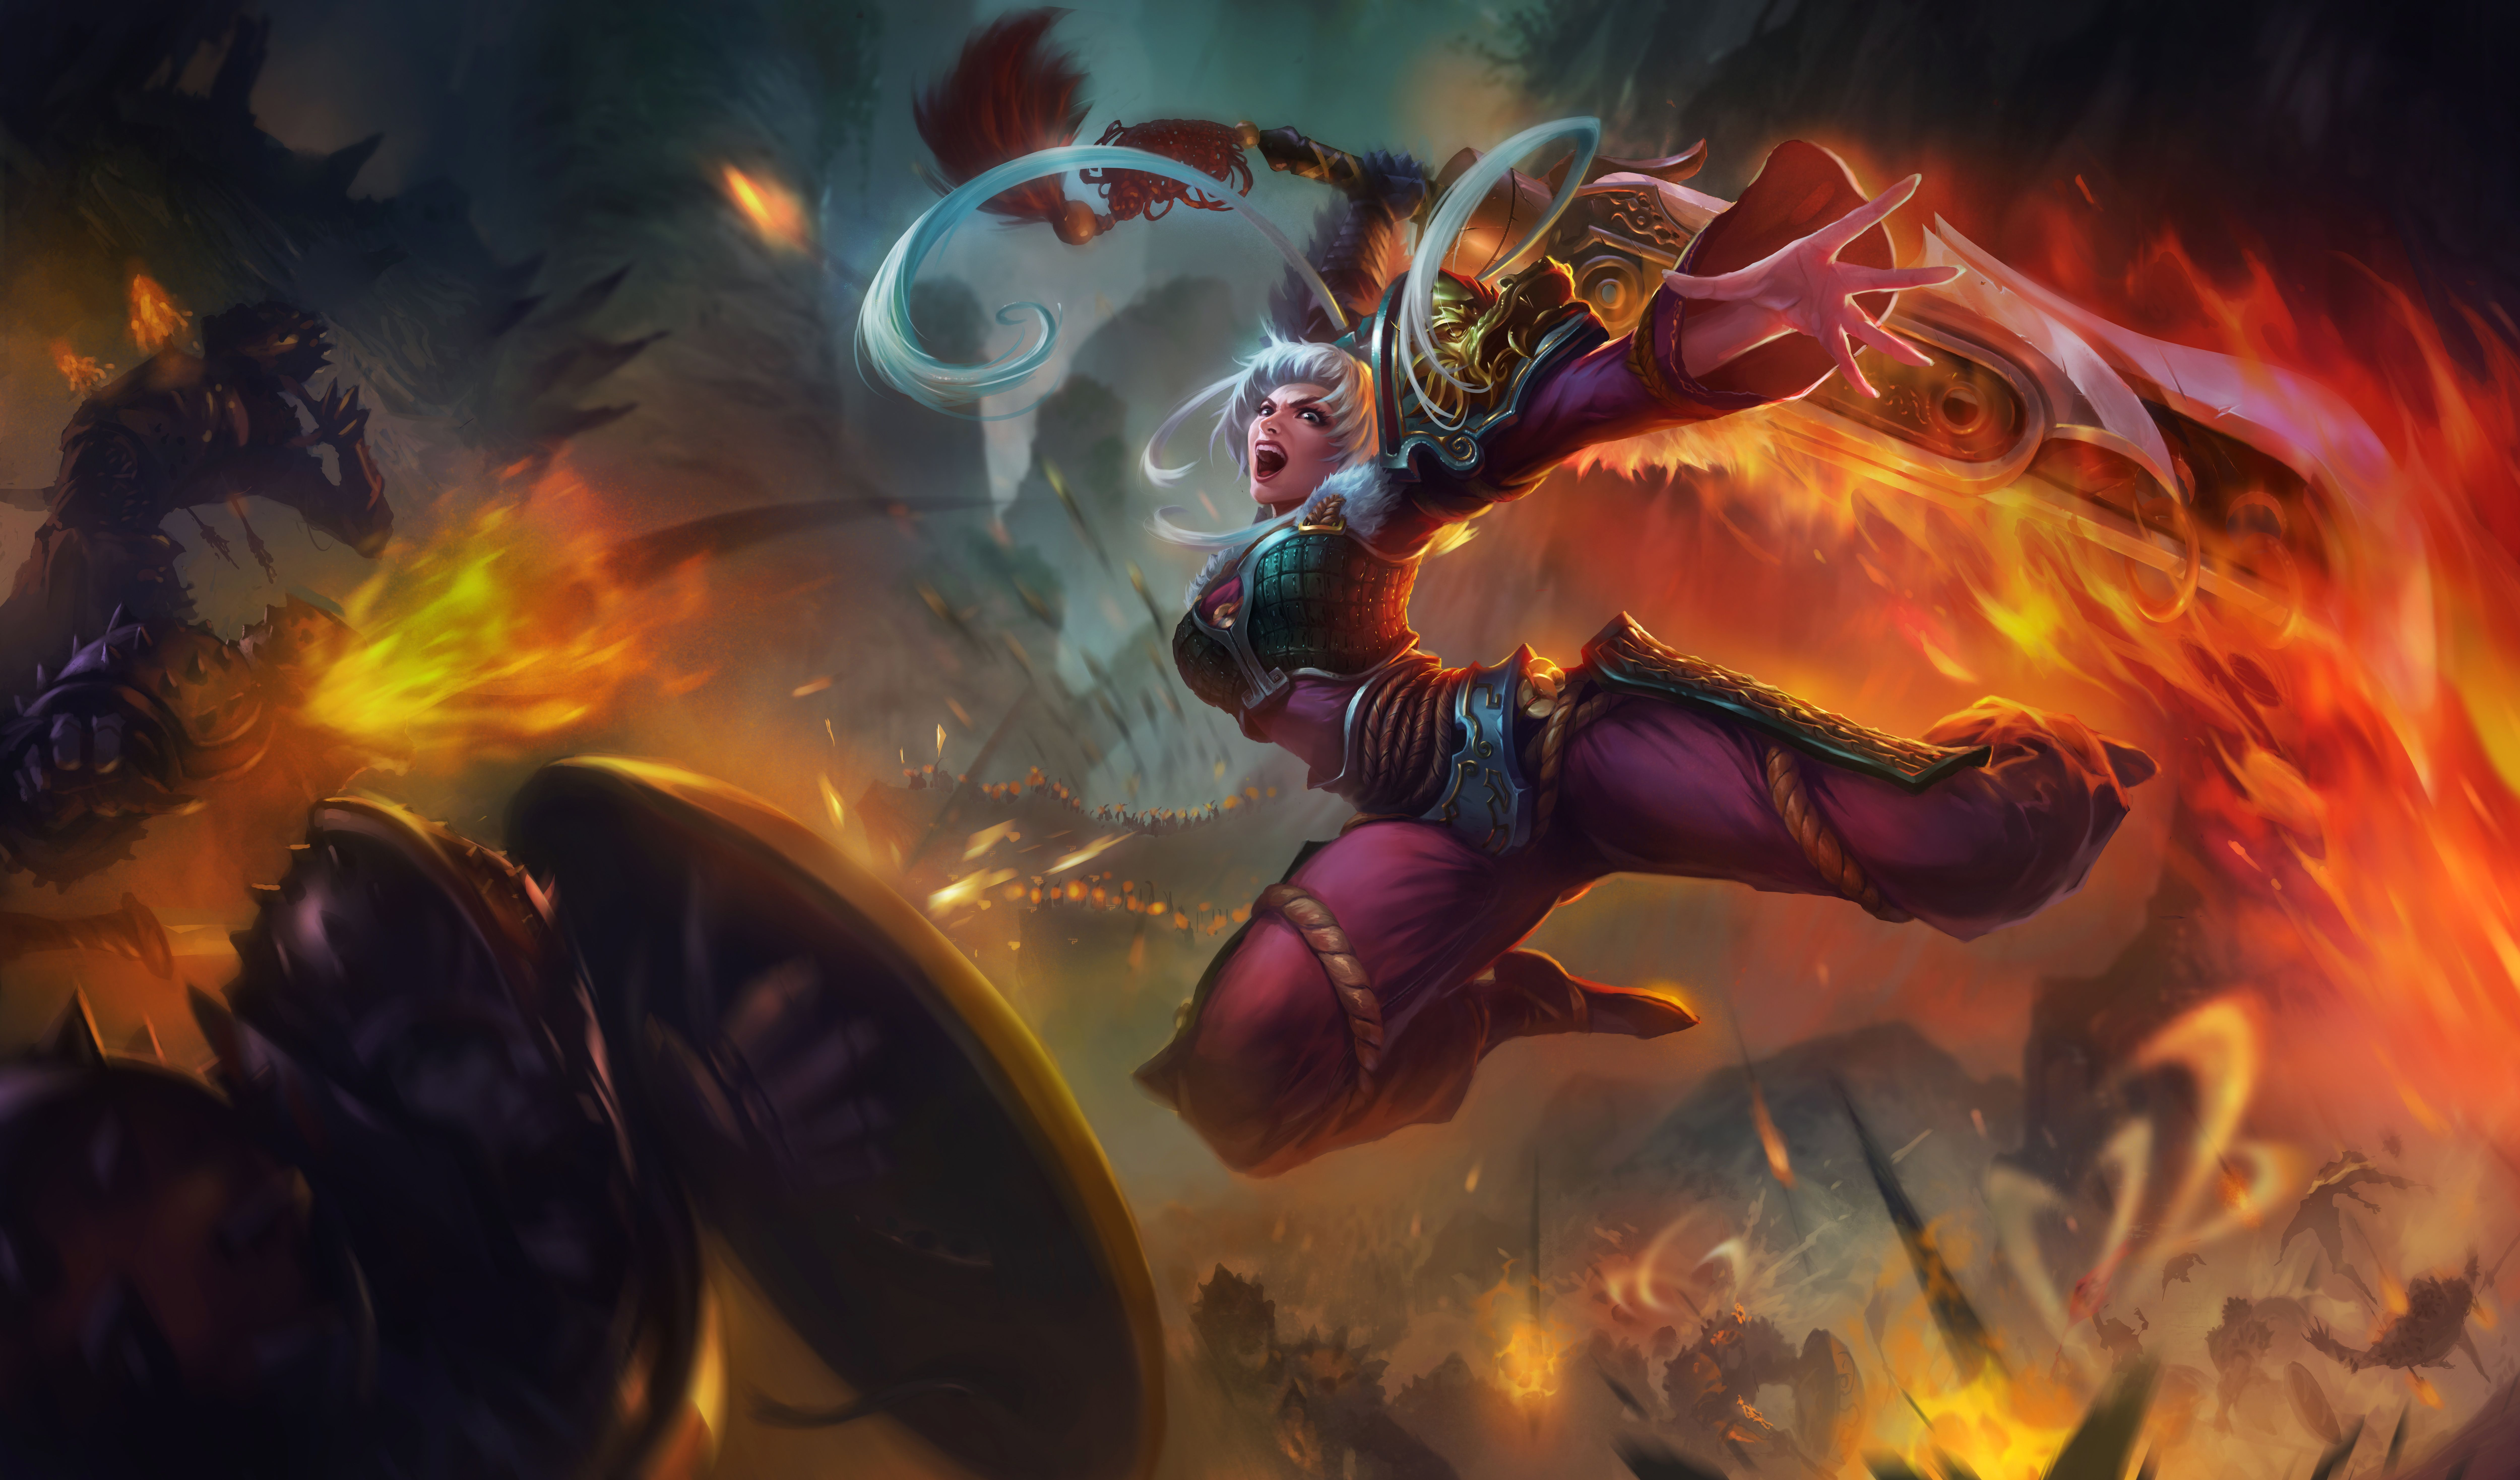 League Of Legends Championship Riven Wallpapers Hd Resolution Jllsly